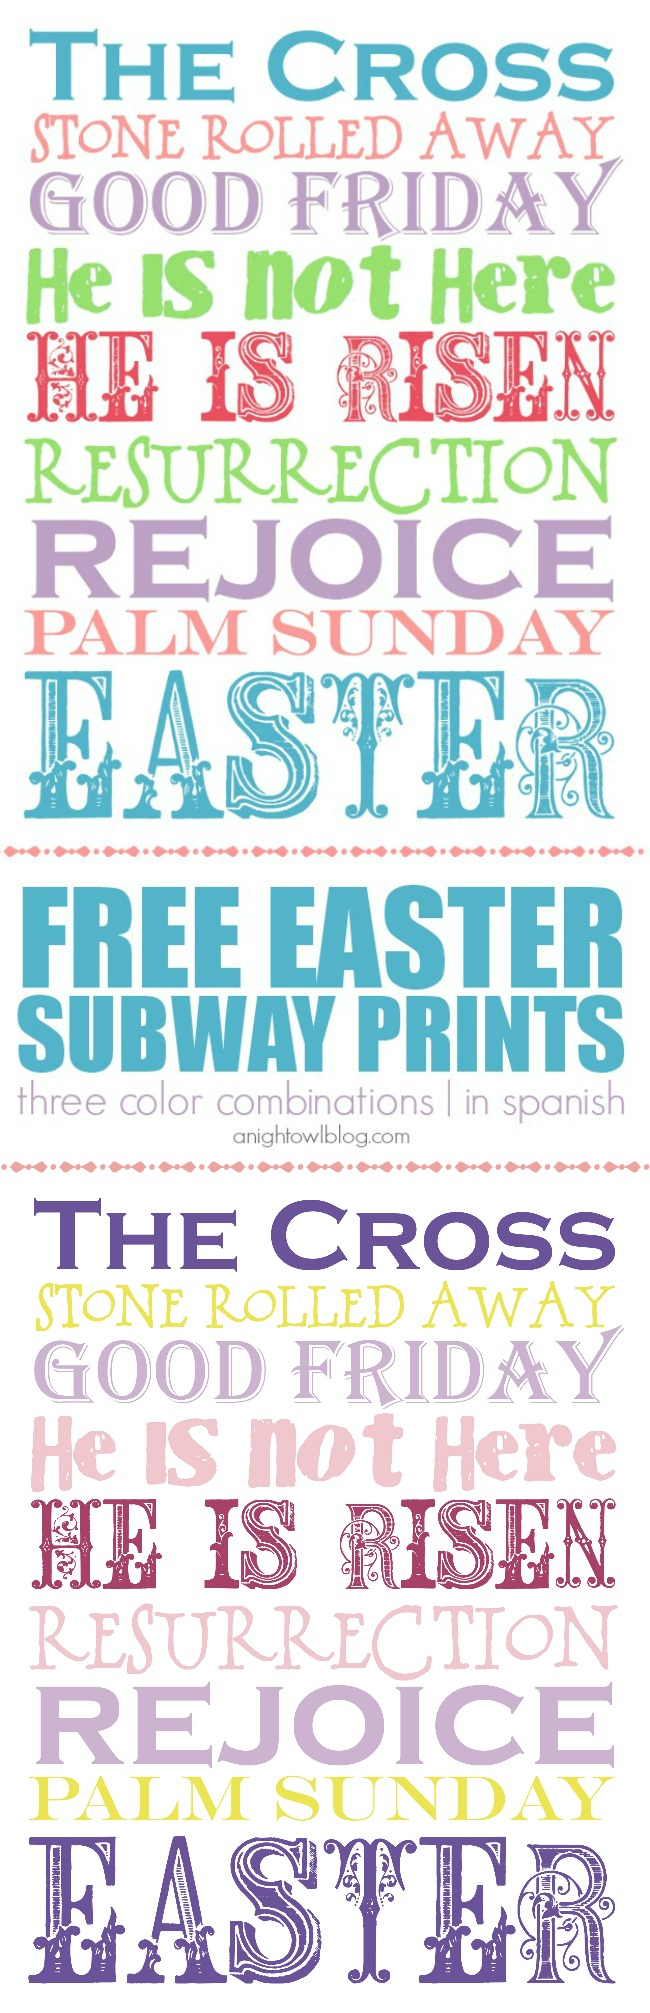 FREE Easter Subway Printables - three color combinations and available in Spanish! Download and print for free Easter decor!